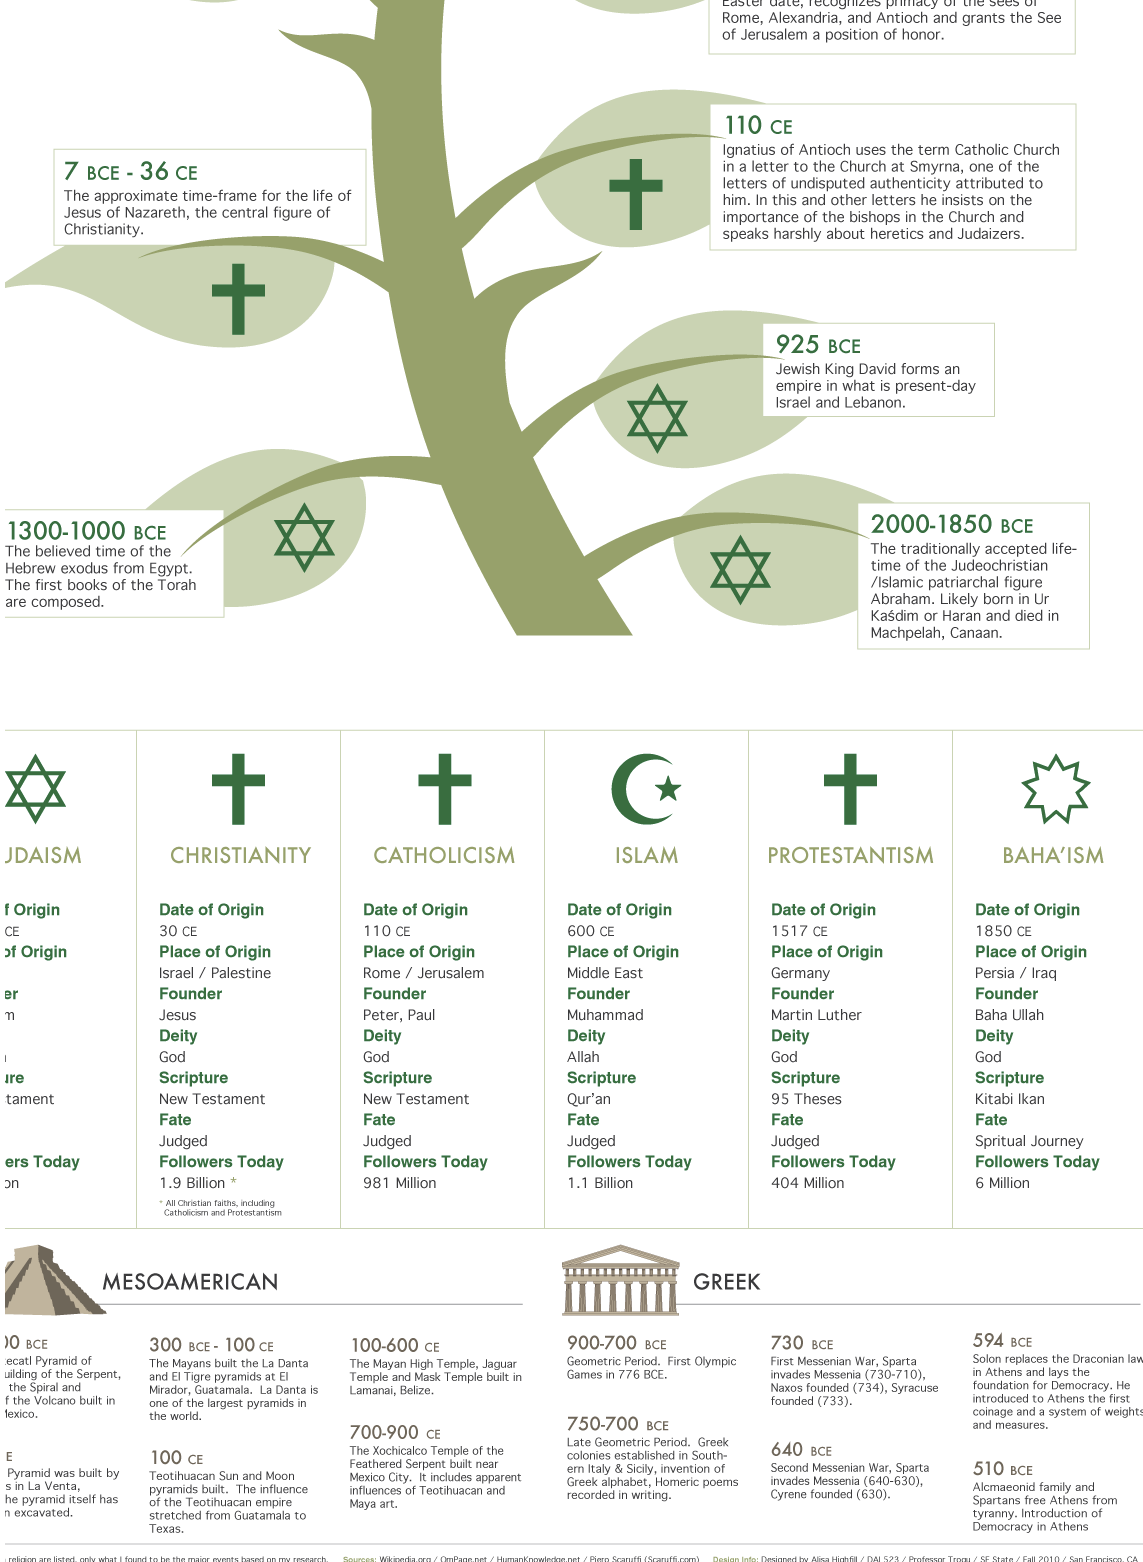 5 Major World Religions Map Pictures To Pin